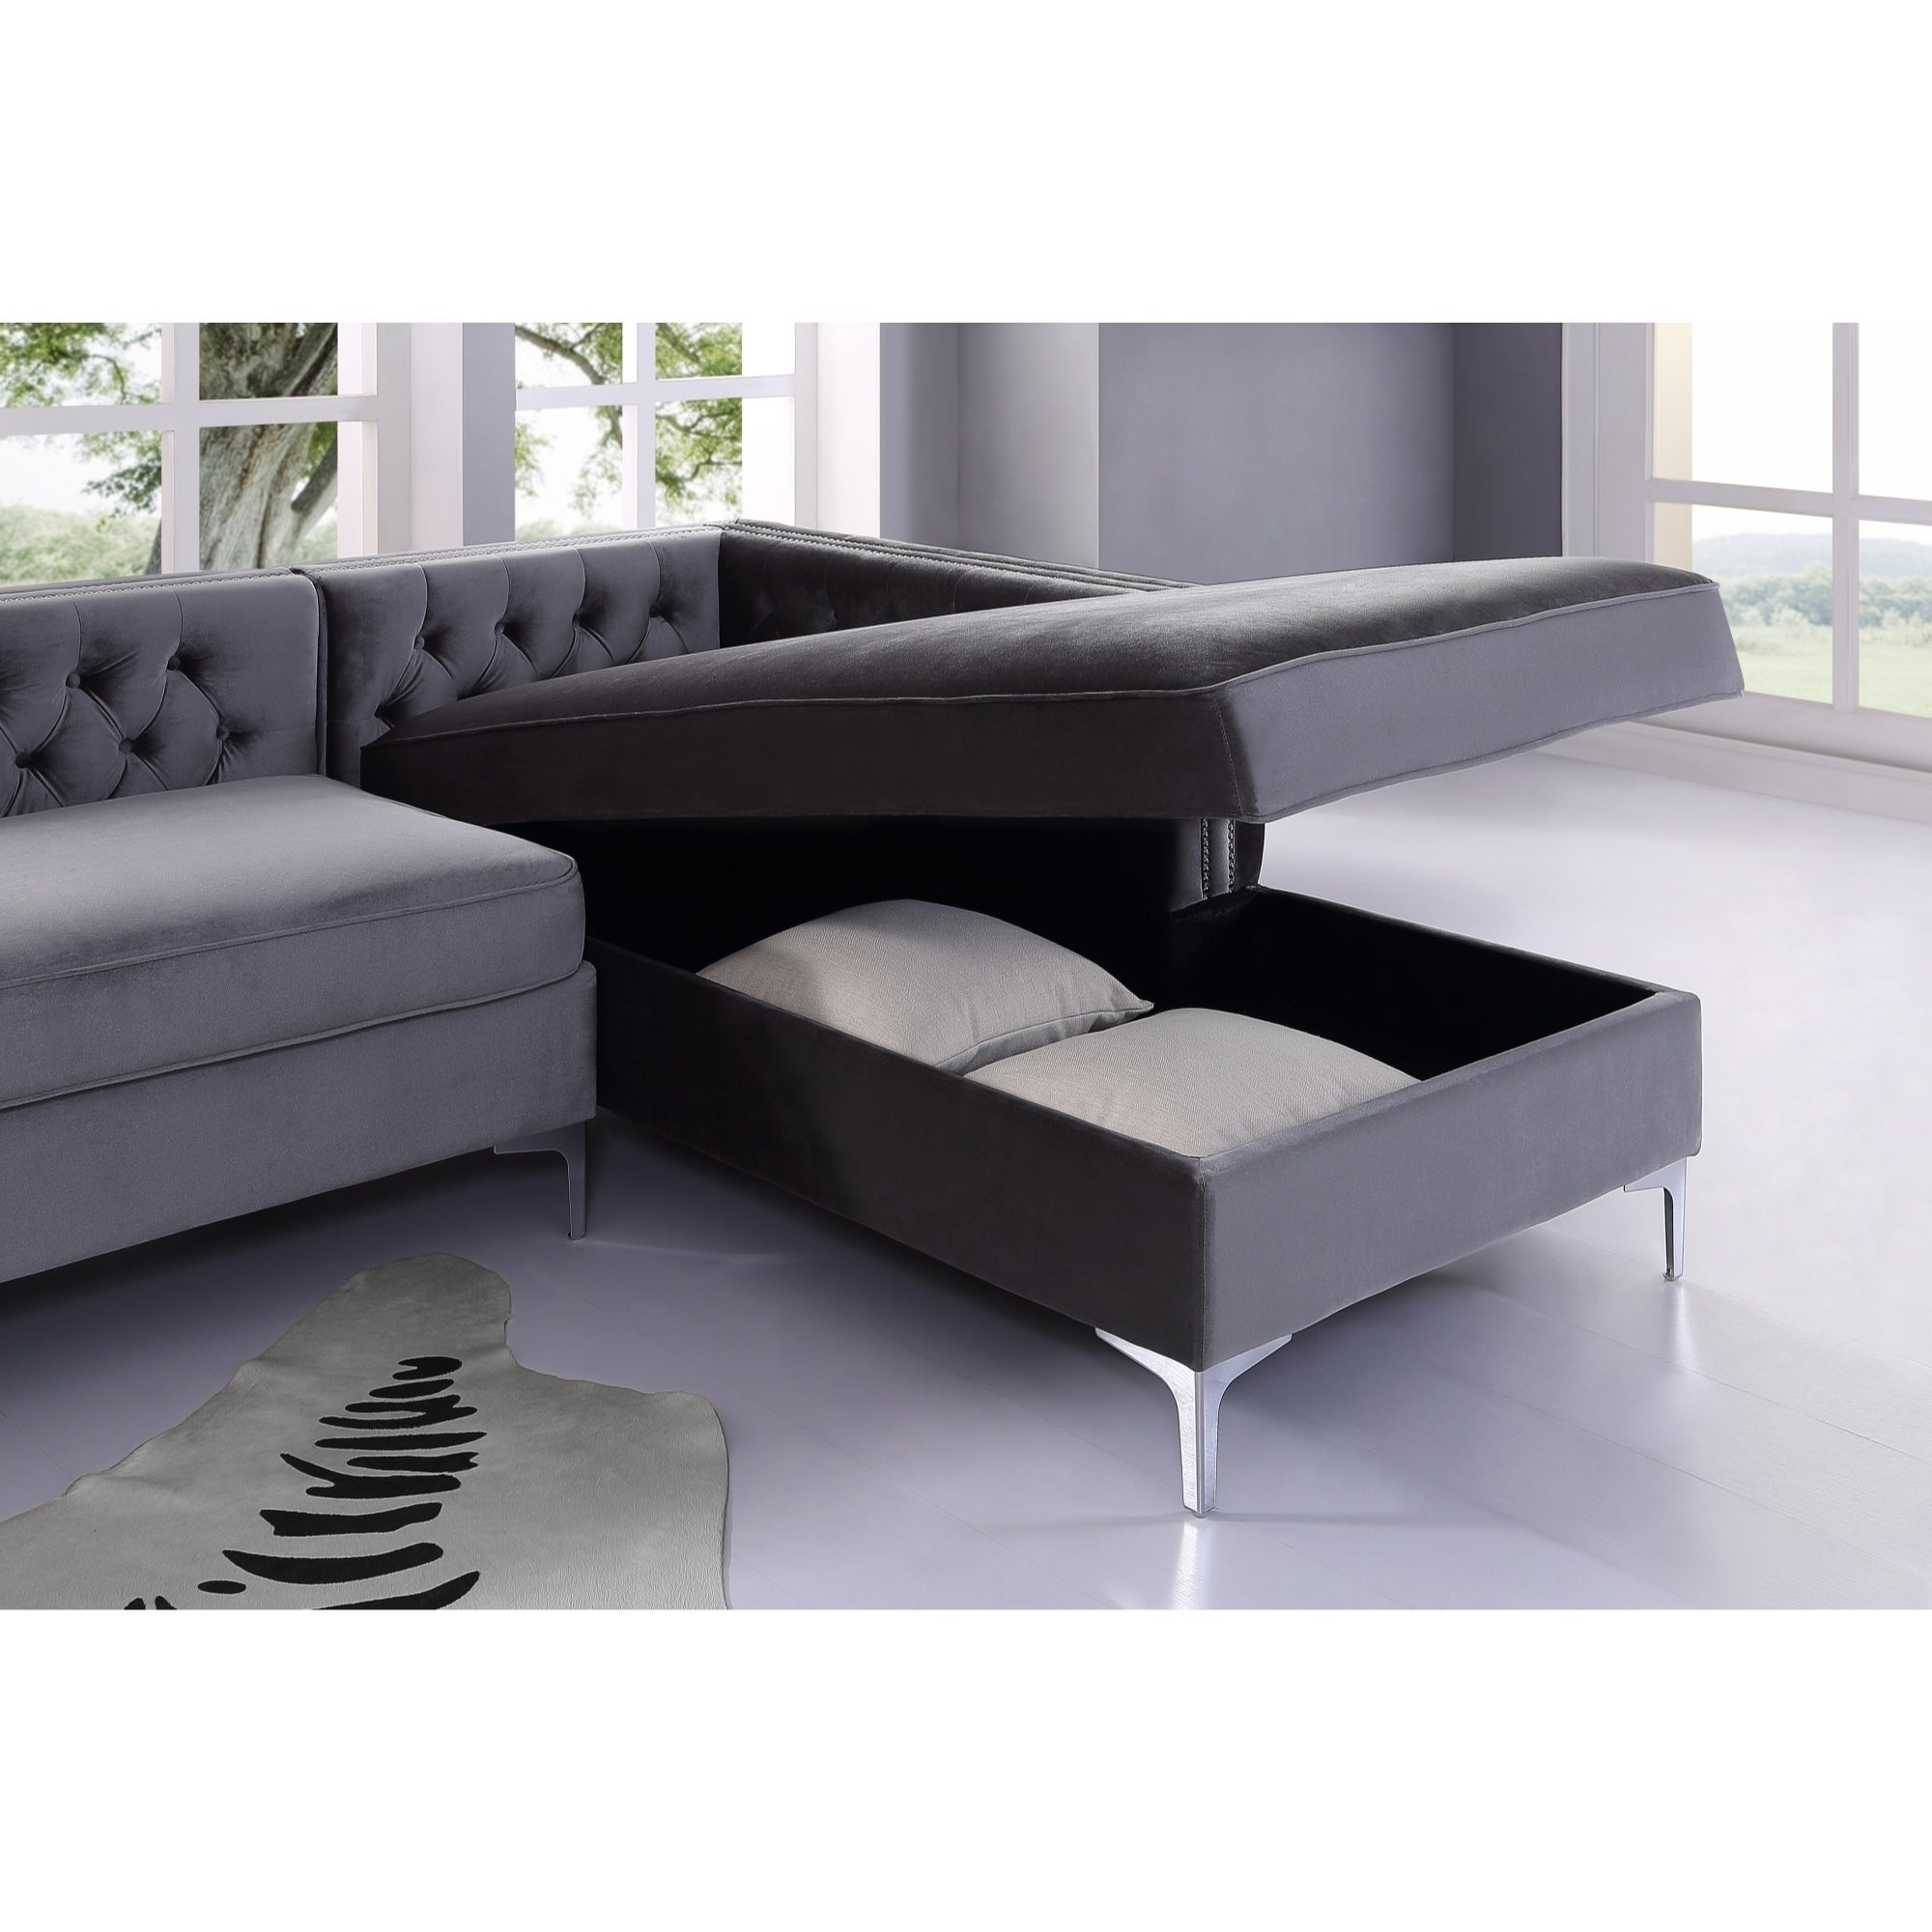 home with comfy room ideas classy mediasupload for living best modern chaise furniture sofa com of luxury velvet sectional